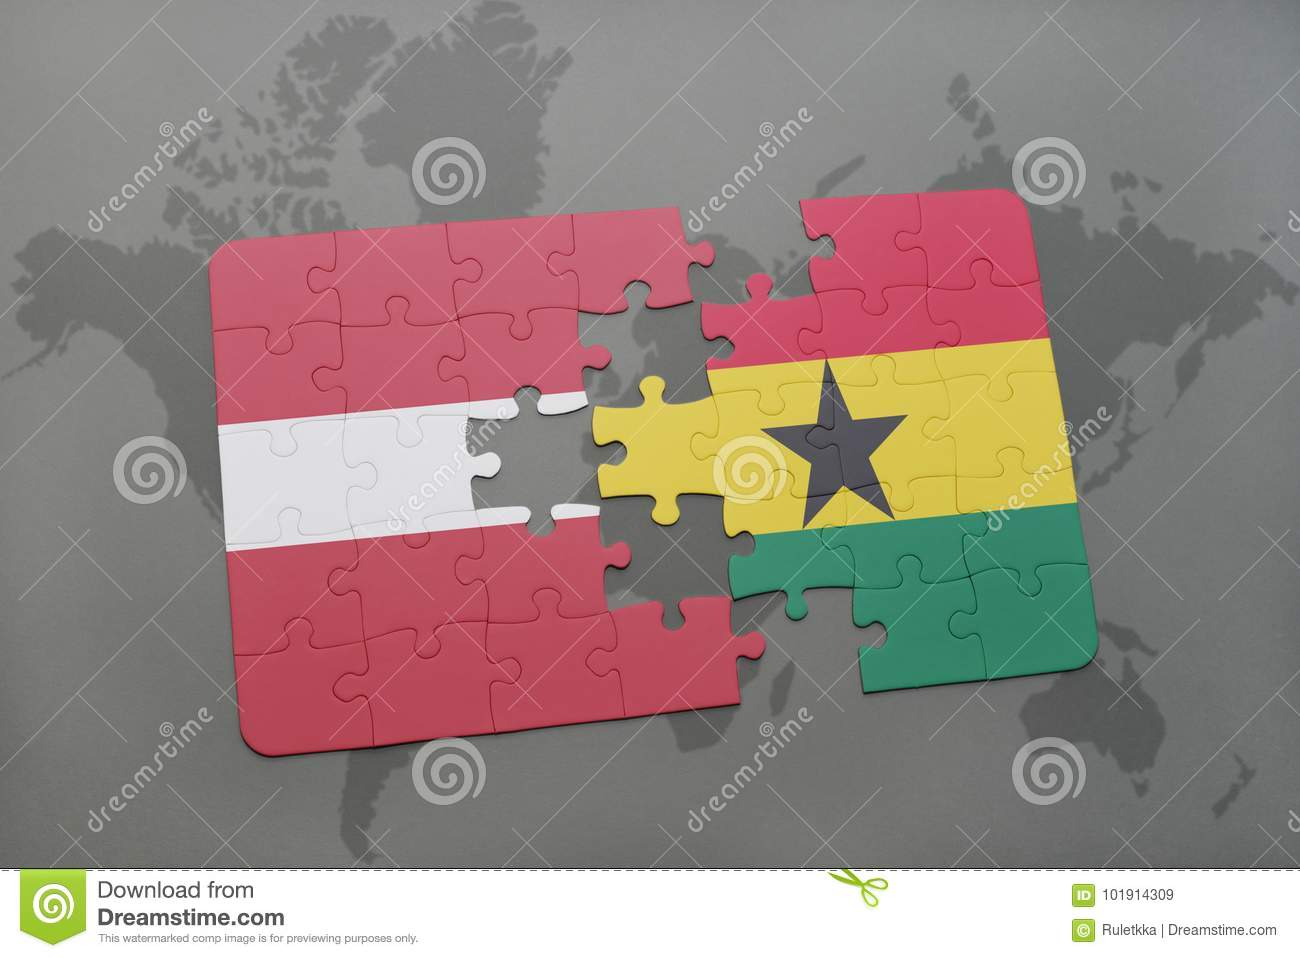 Puzzle with the national flag of latvia and ghana on a world map download puzzle with the national flag of latvia and ghana on a world map stock illustration gumiabroncs Choice Image